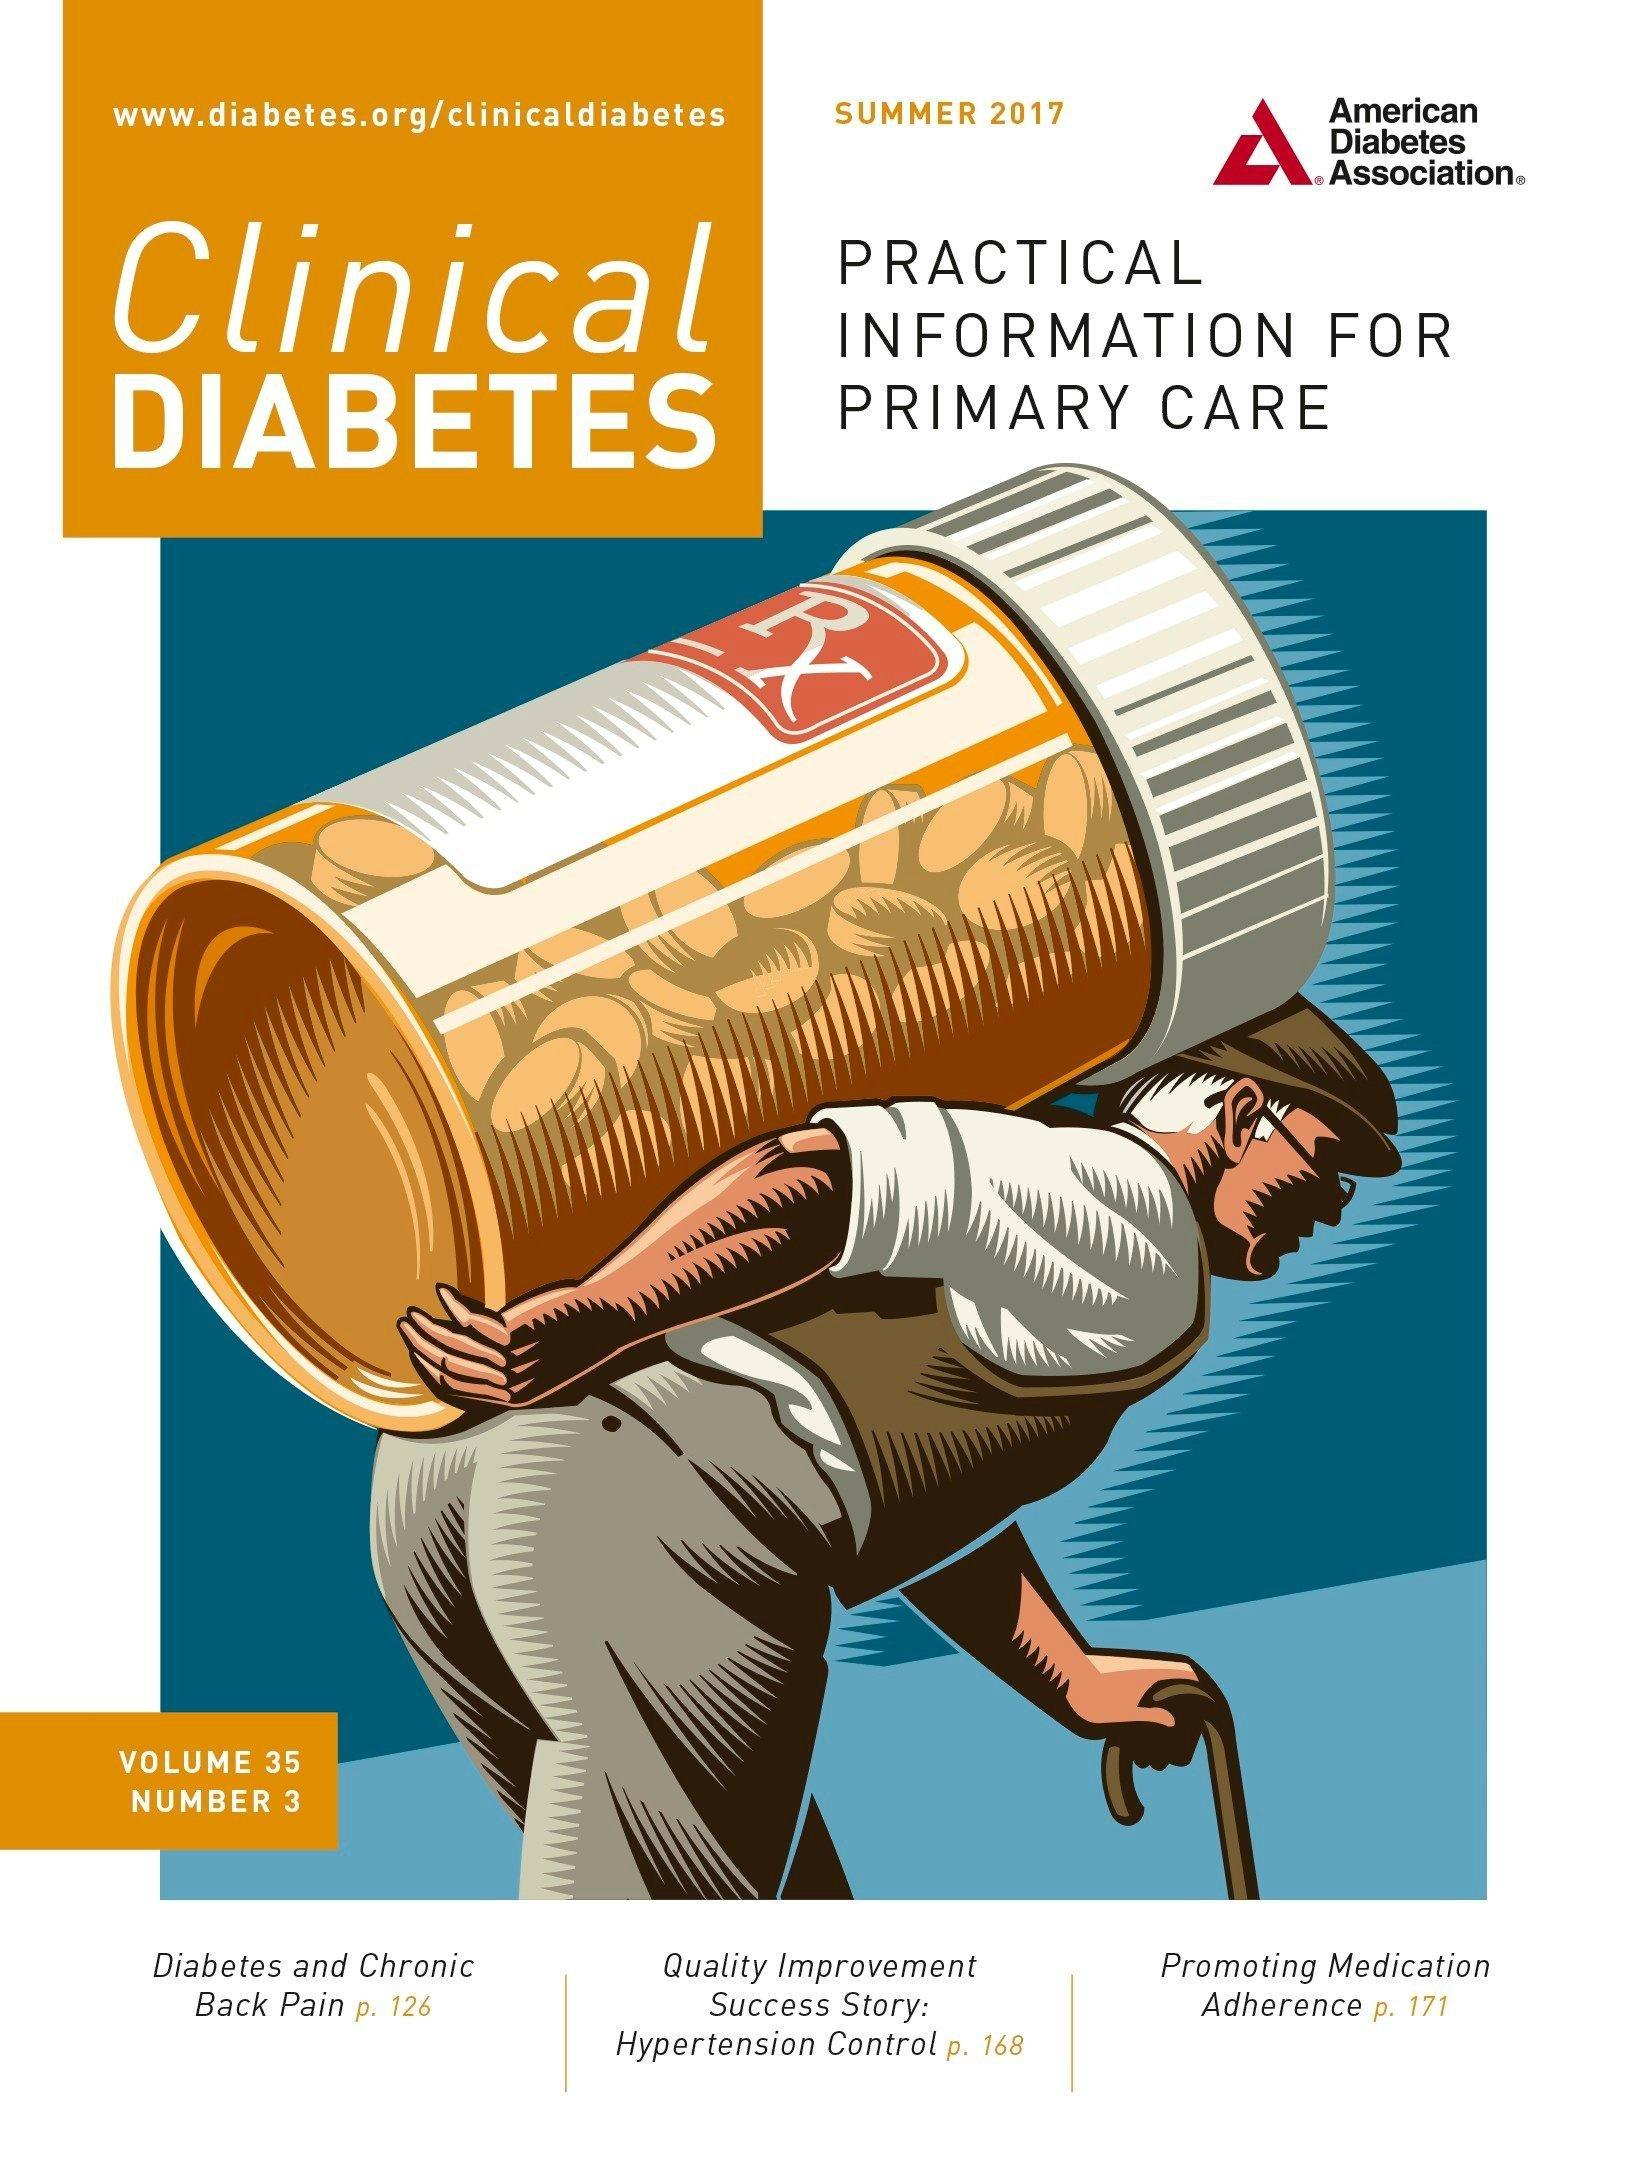 Diabetes And Back Pain: Markers Of Diabetes Disease Progression Are Associated With Chronic Back Pain